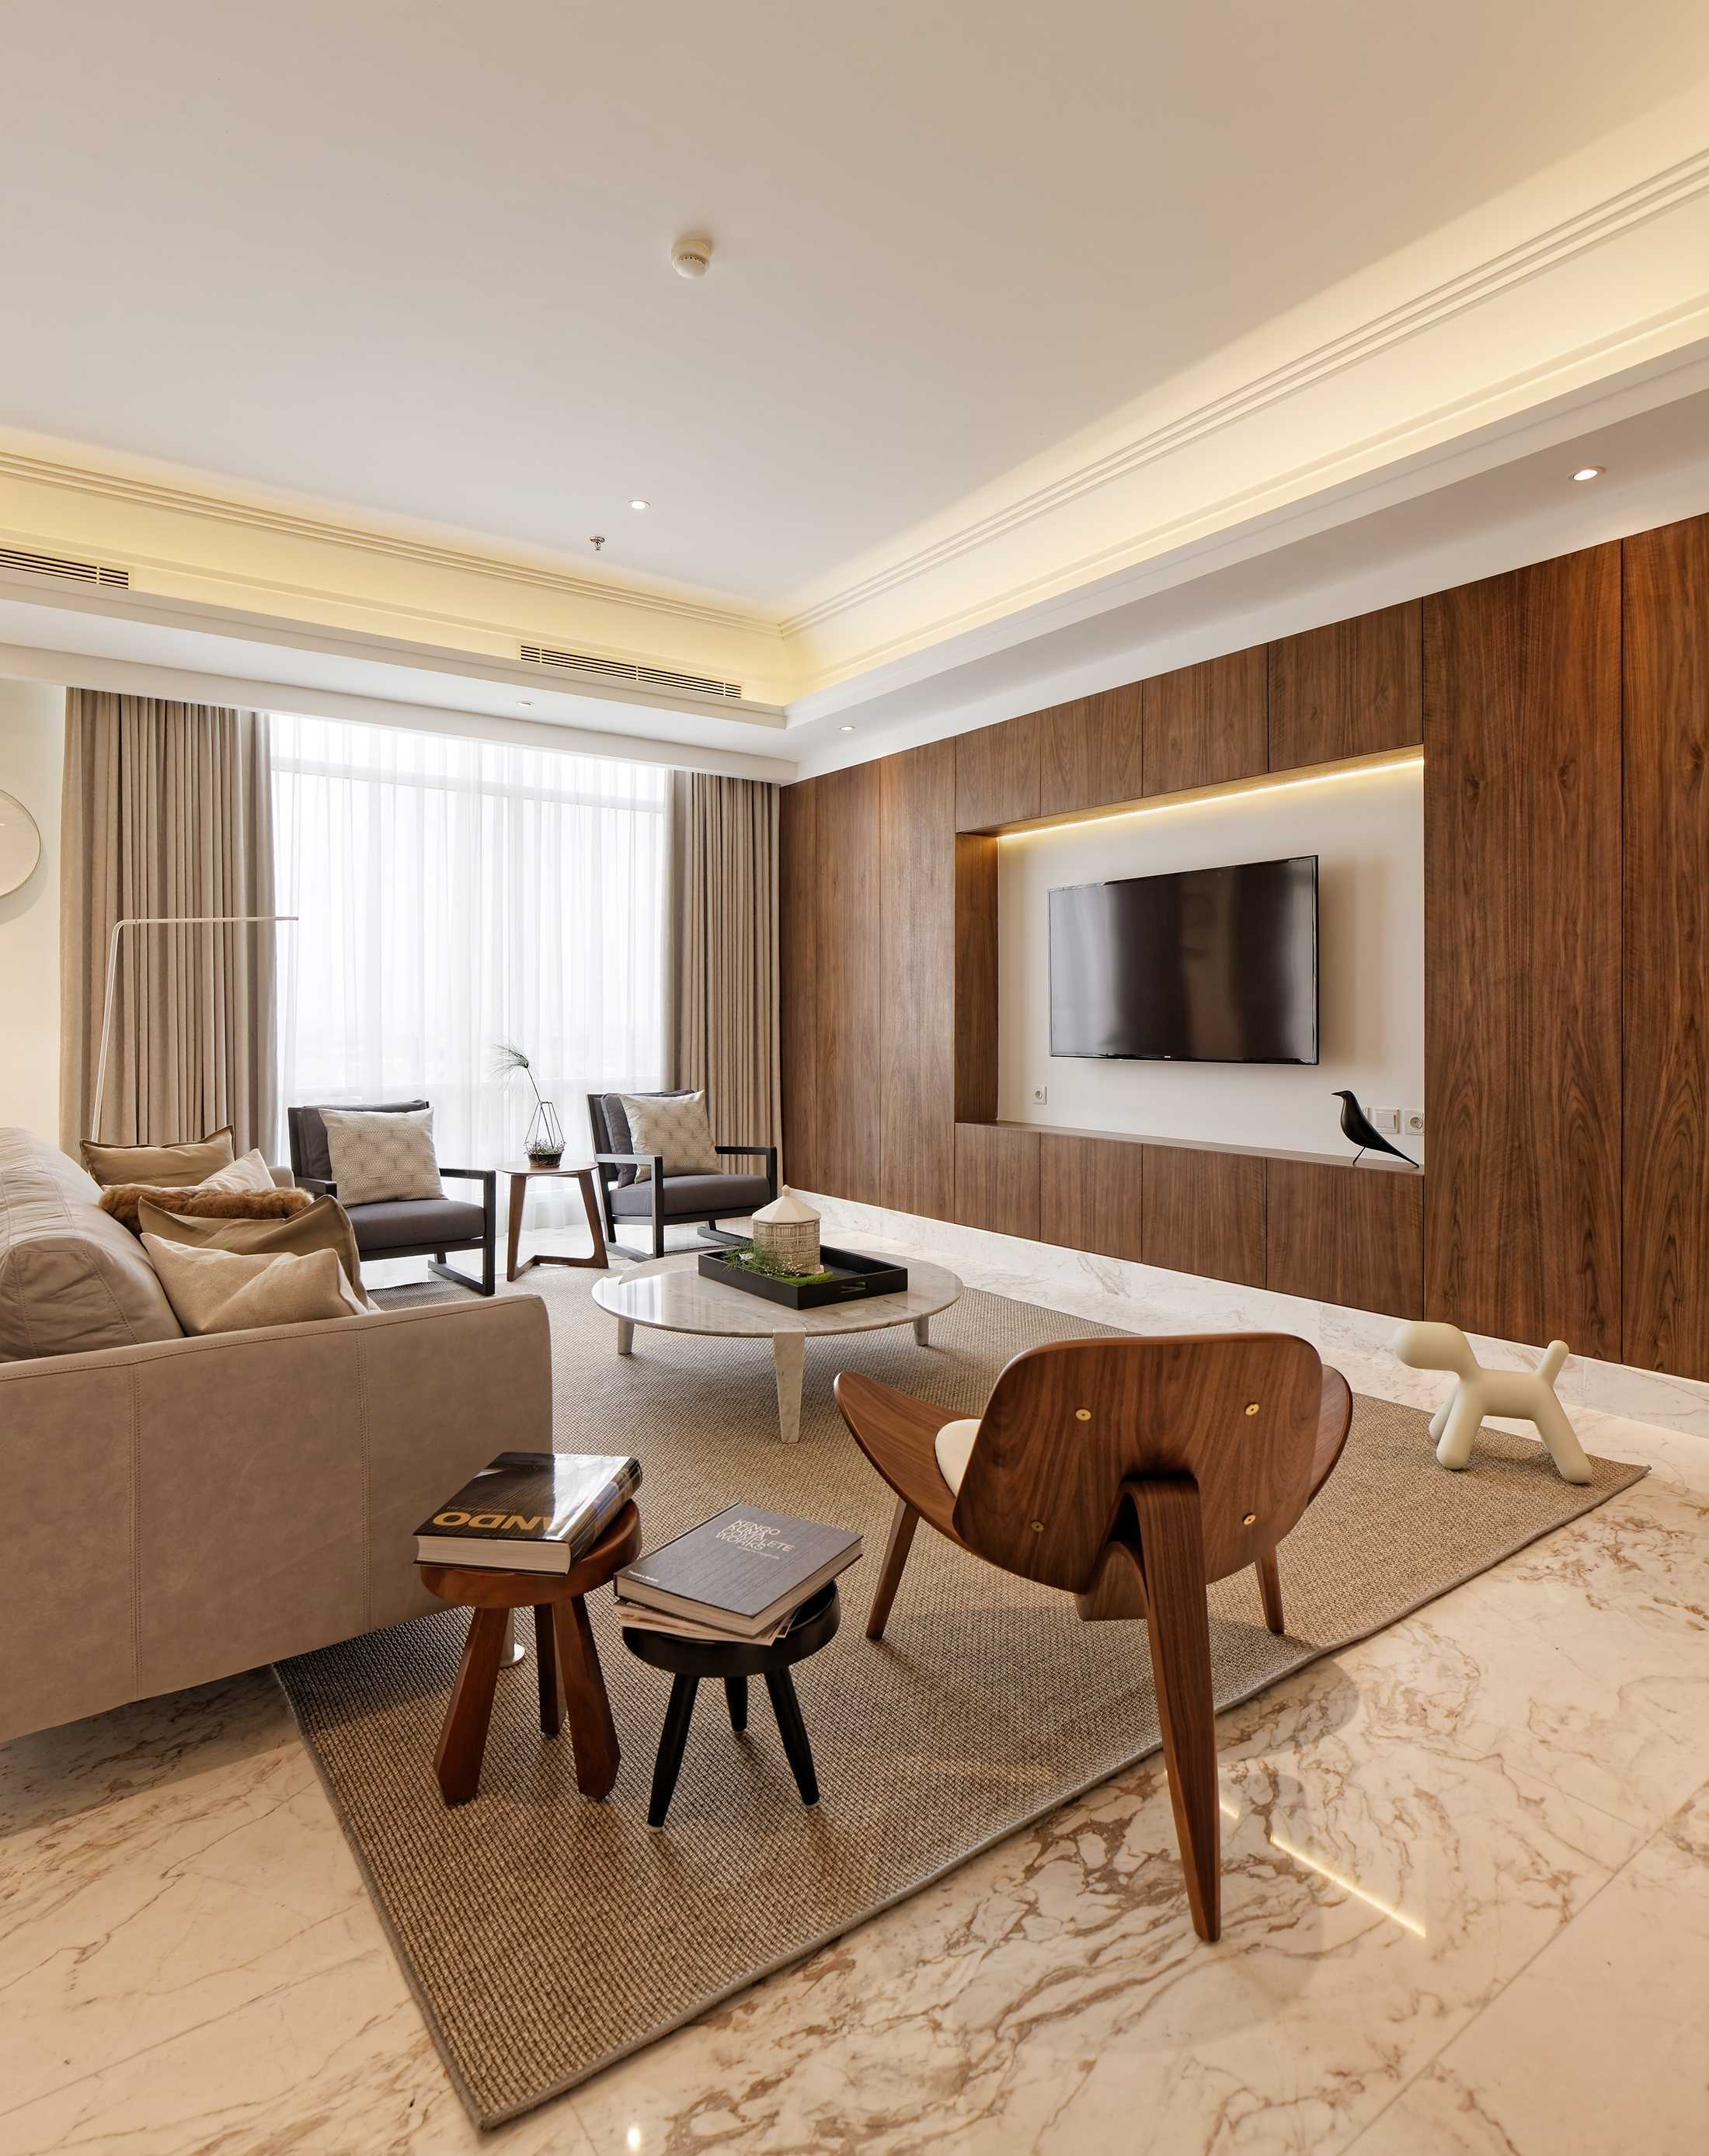 Sontani Partners 11A Residence South Jakarta, Indonesia South Jakarta, Indonesia Living Room Contemporary  21393